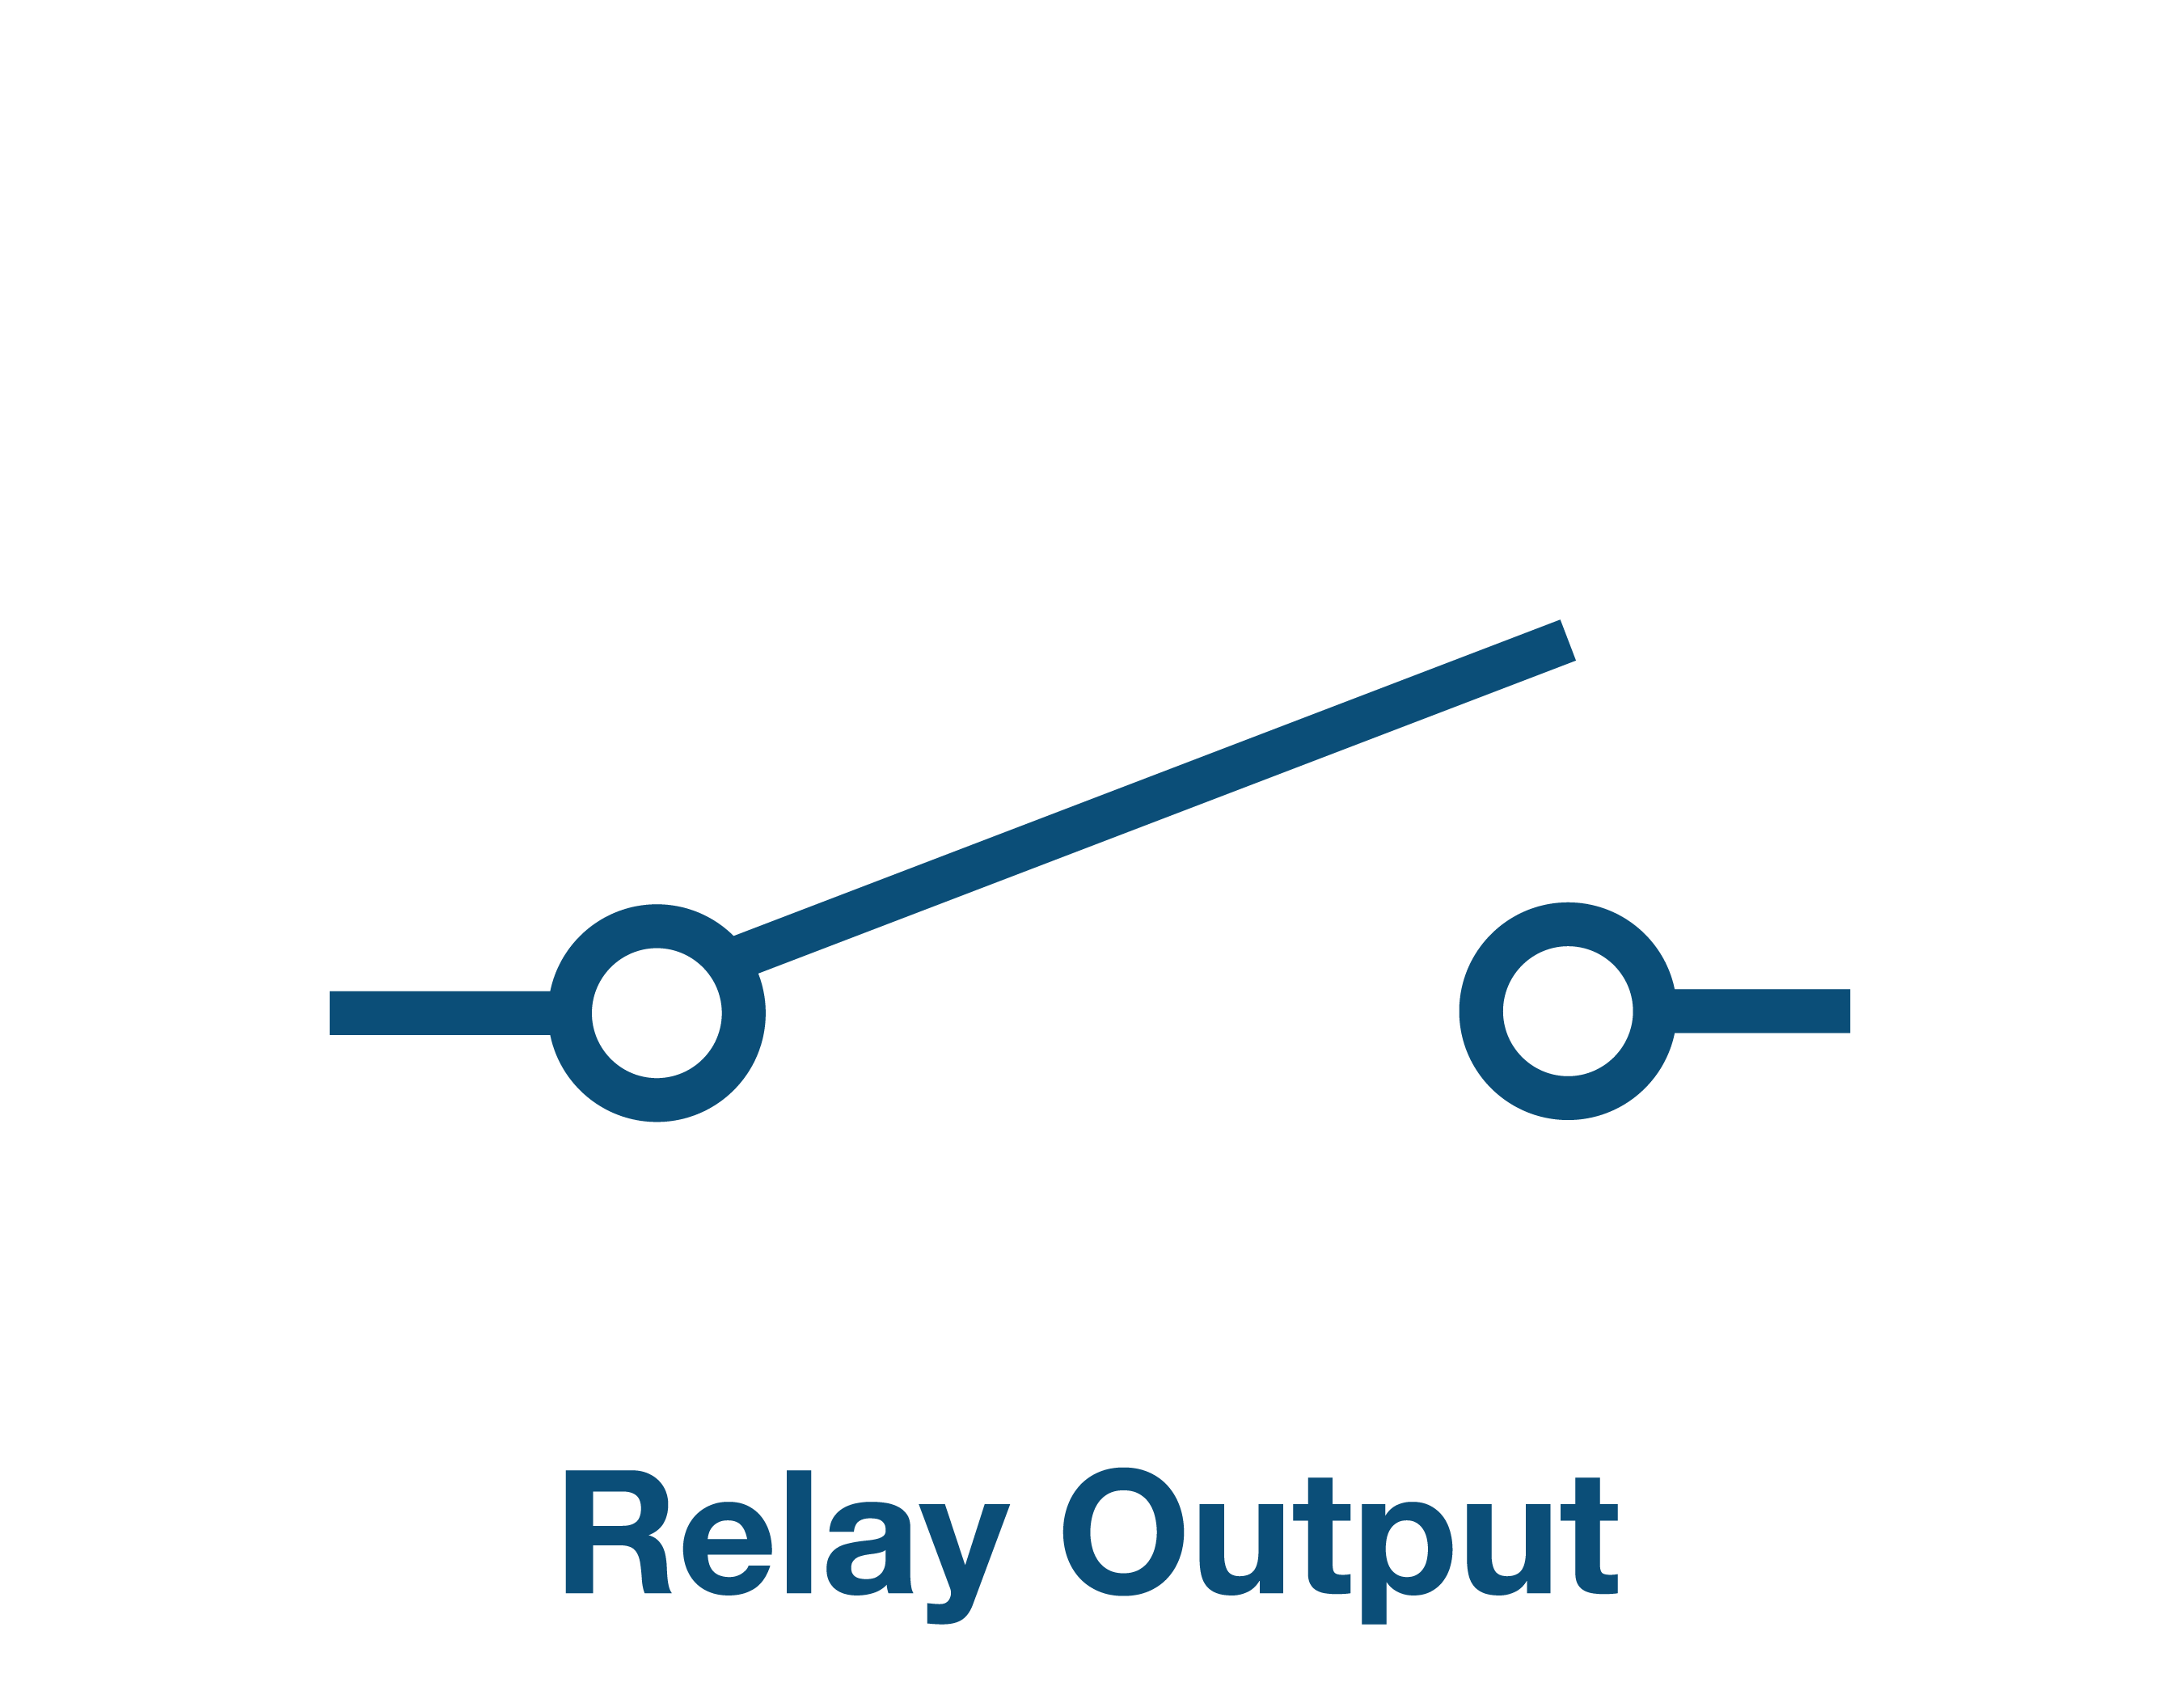 Relay Outputs x 3